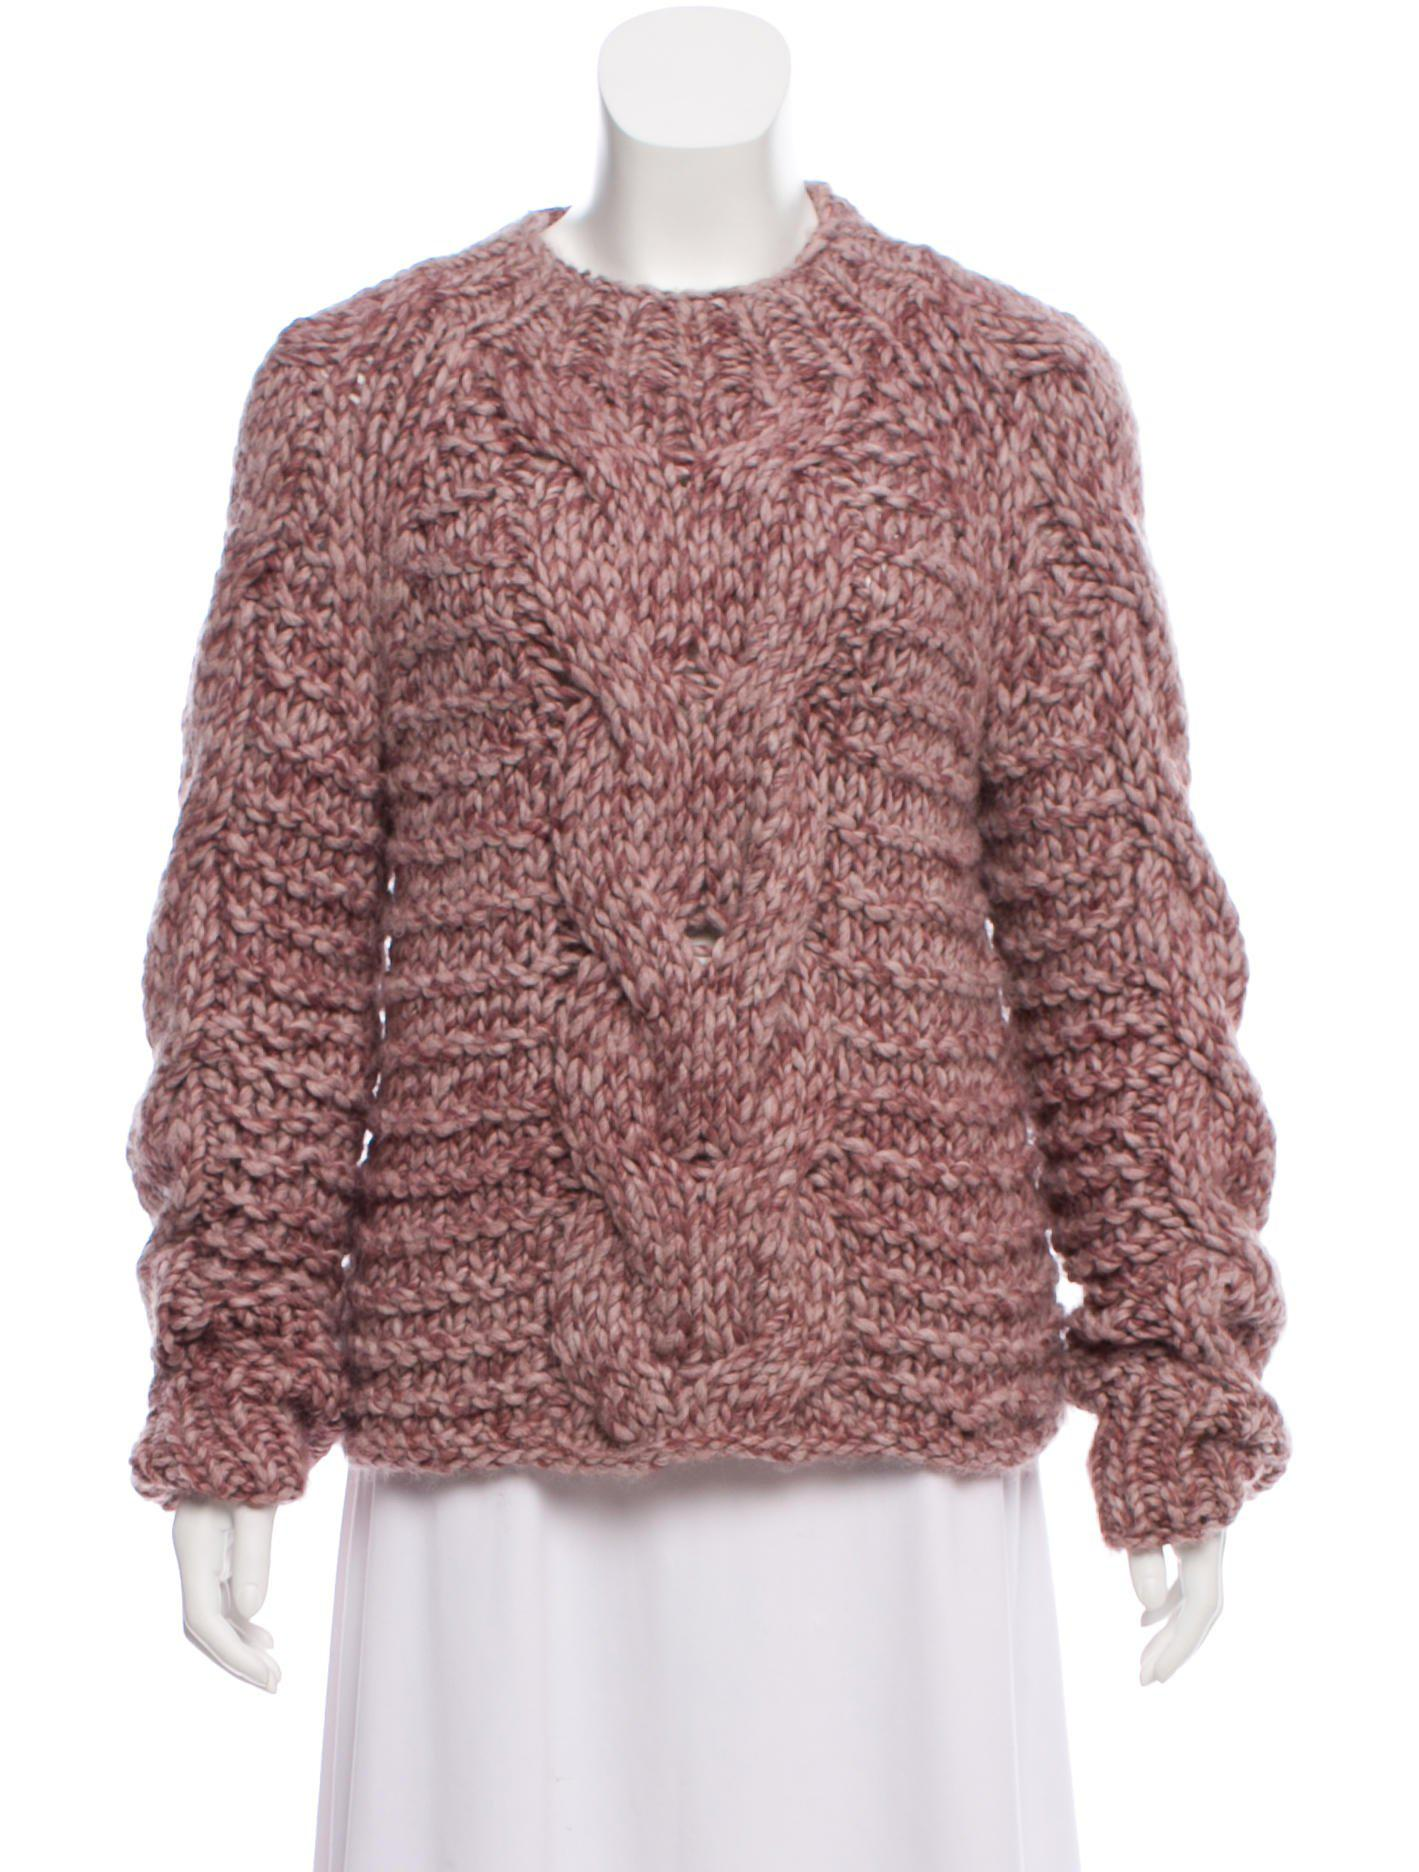 a7e1514b64ec Lyst - Ulla Johnson Alpaca Cable Knit Sweater in Pink